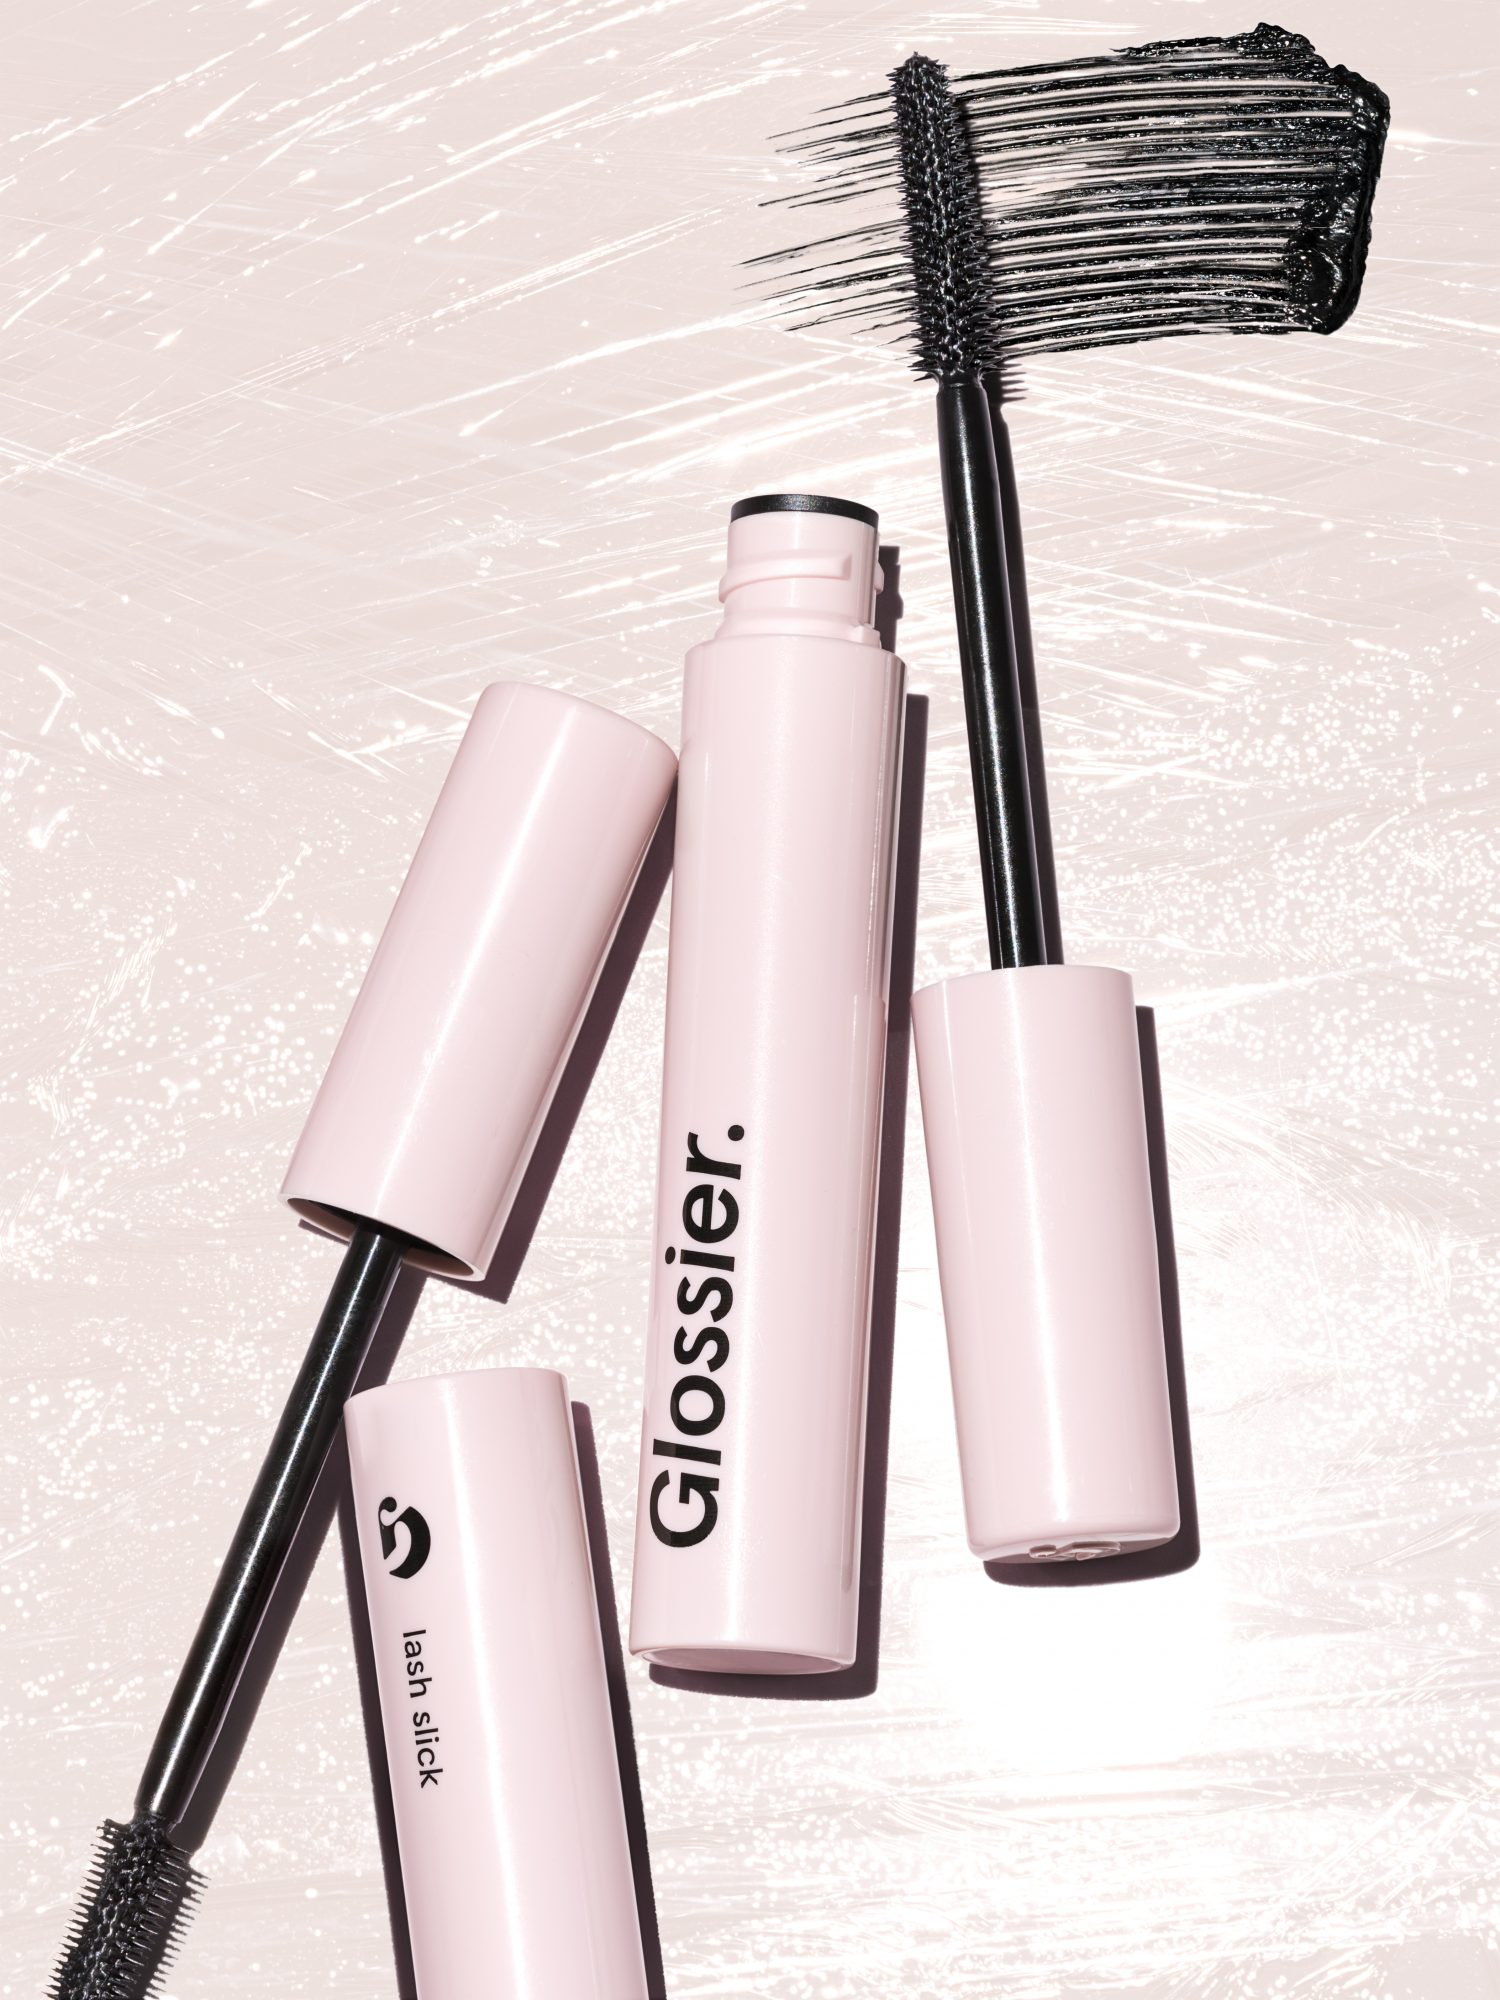 We Tried Glossier's New Lash Slick Mascara to See If It's Worth The Hype